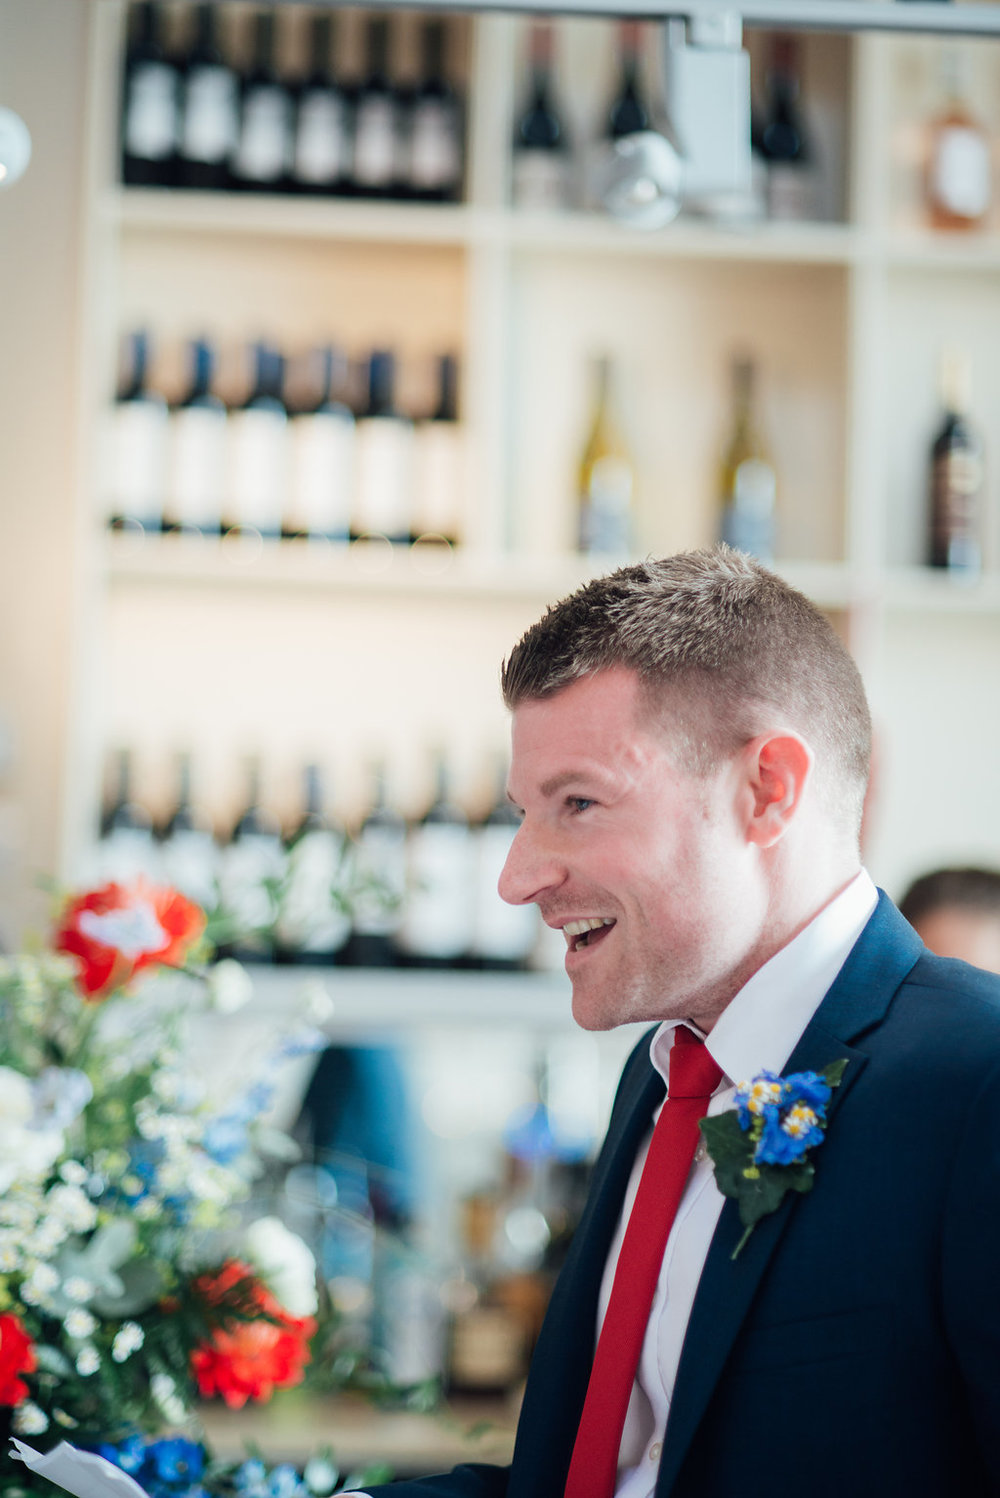 liberty-pearl-photography-cornwall-wedding-porthleven-wedding-red-and-blue-wedding-colour-palette-81